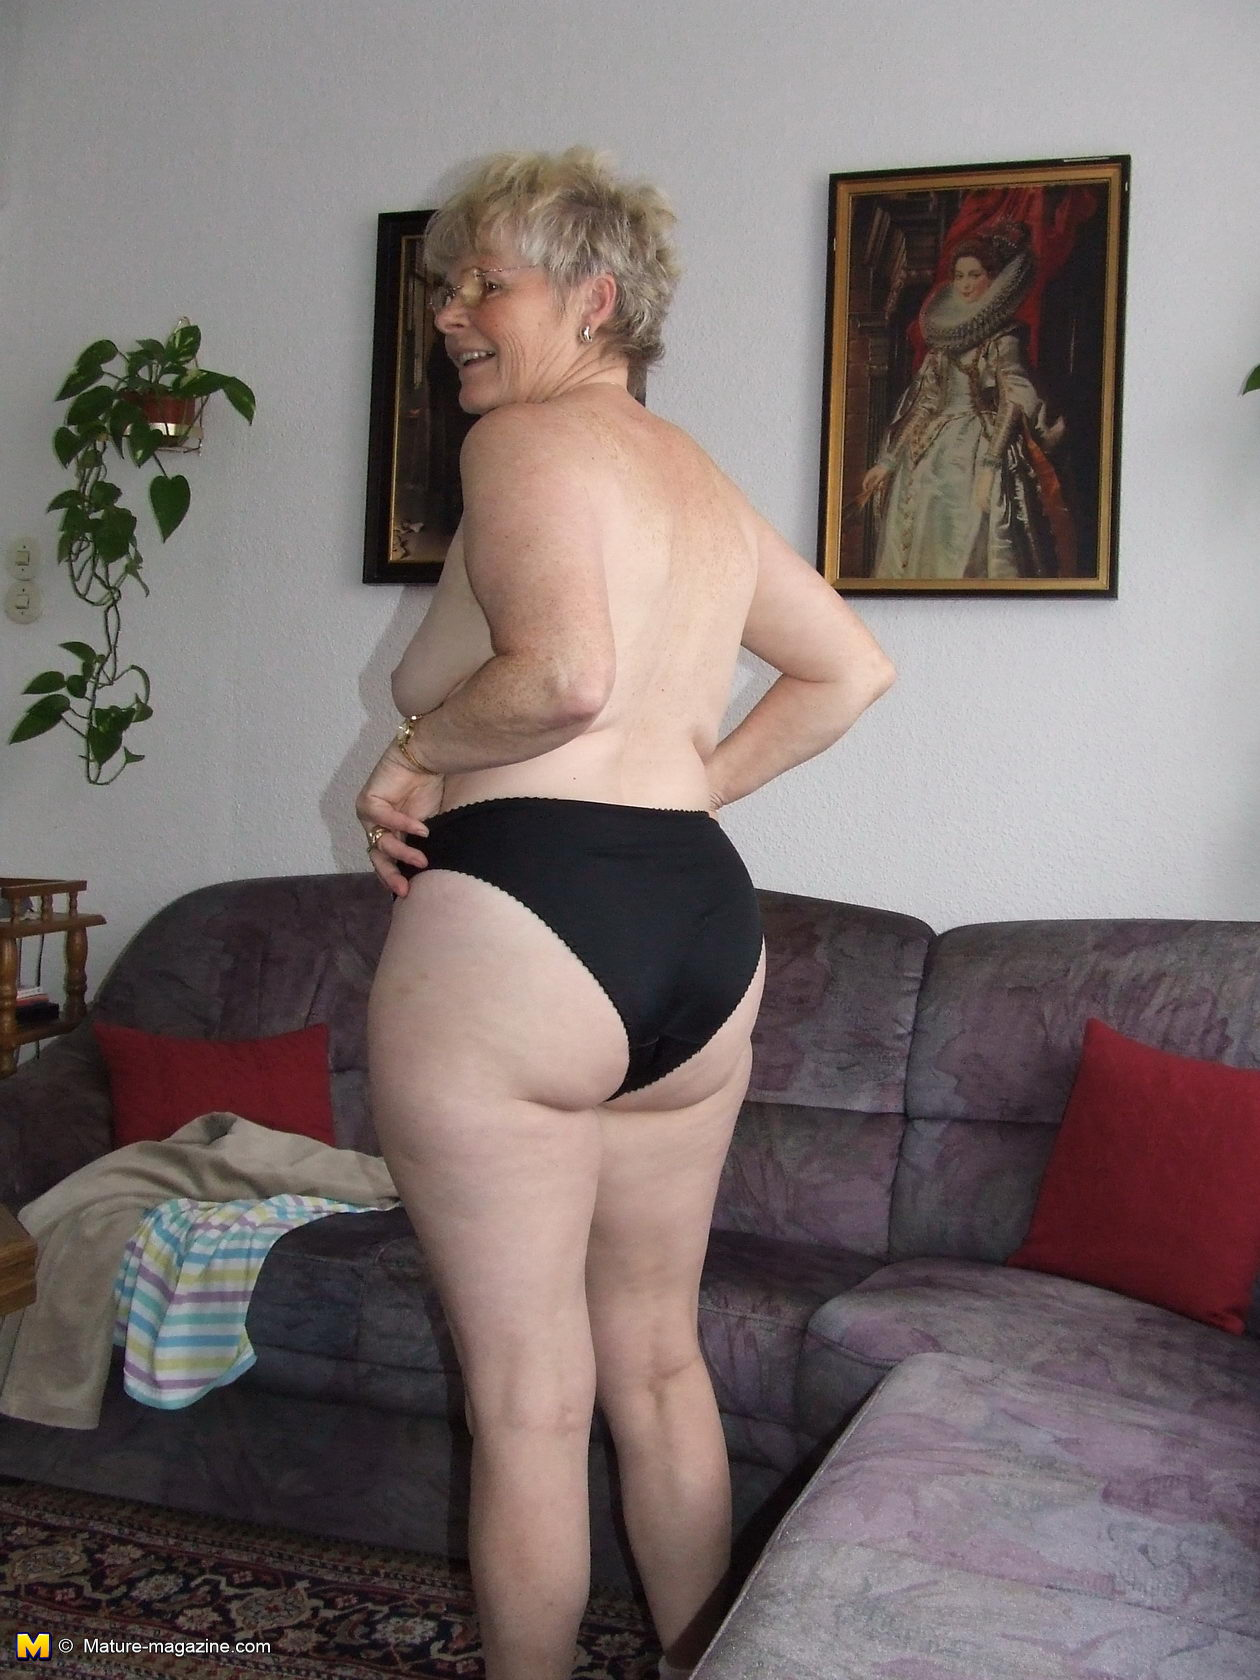 Hot mature lady shows her mature body